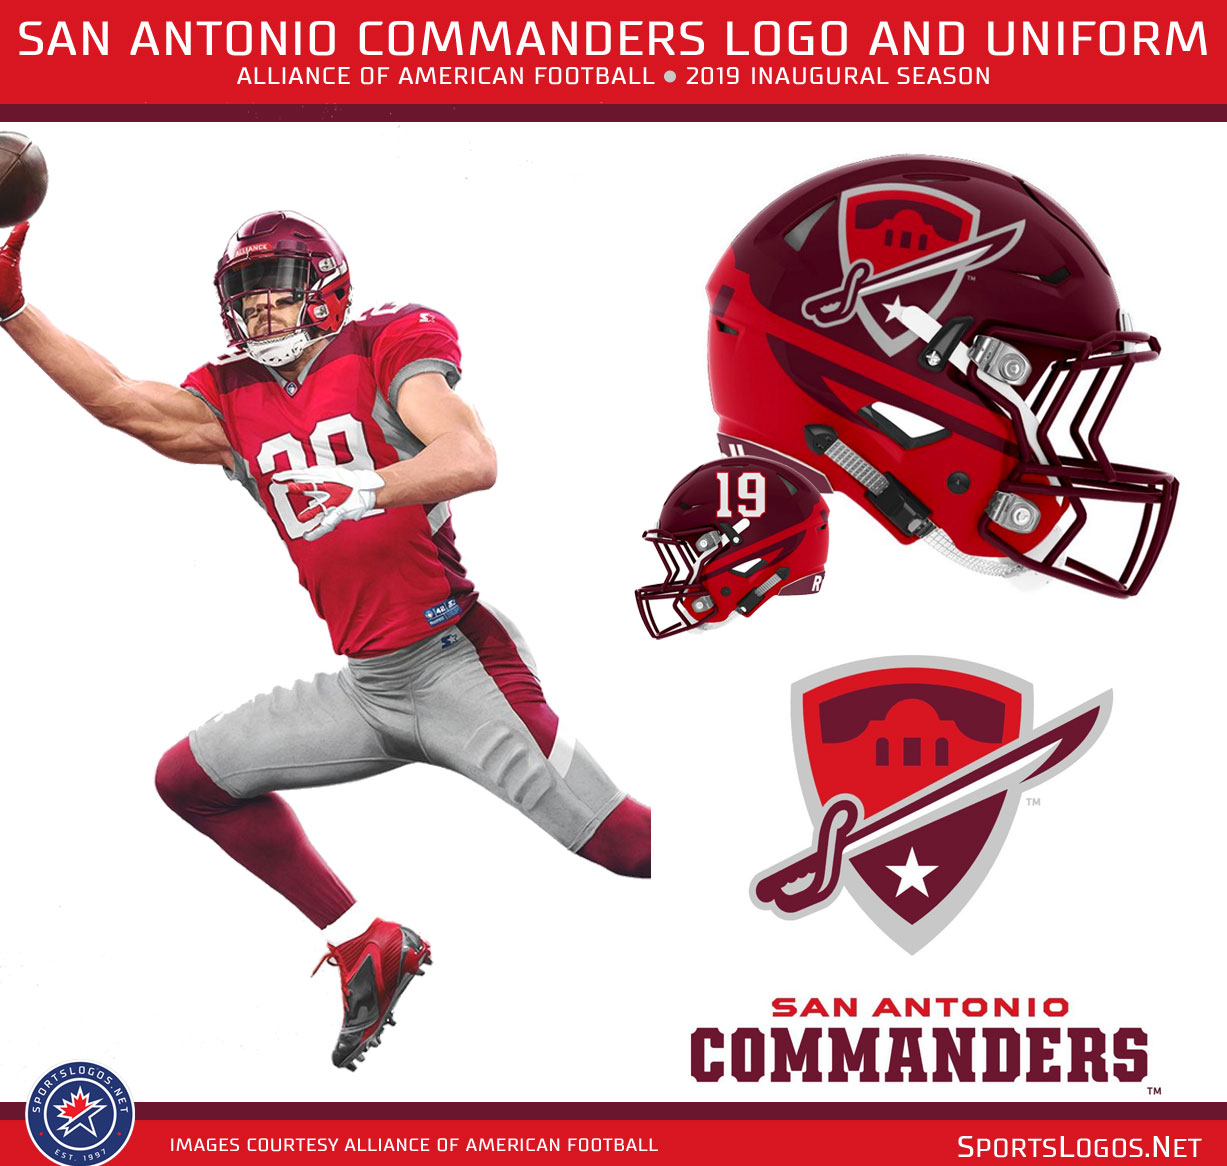 San-Antonio-Commanders-AAF-Uniforms-2019.jpg